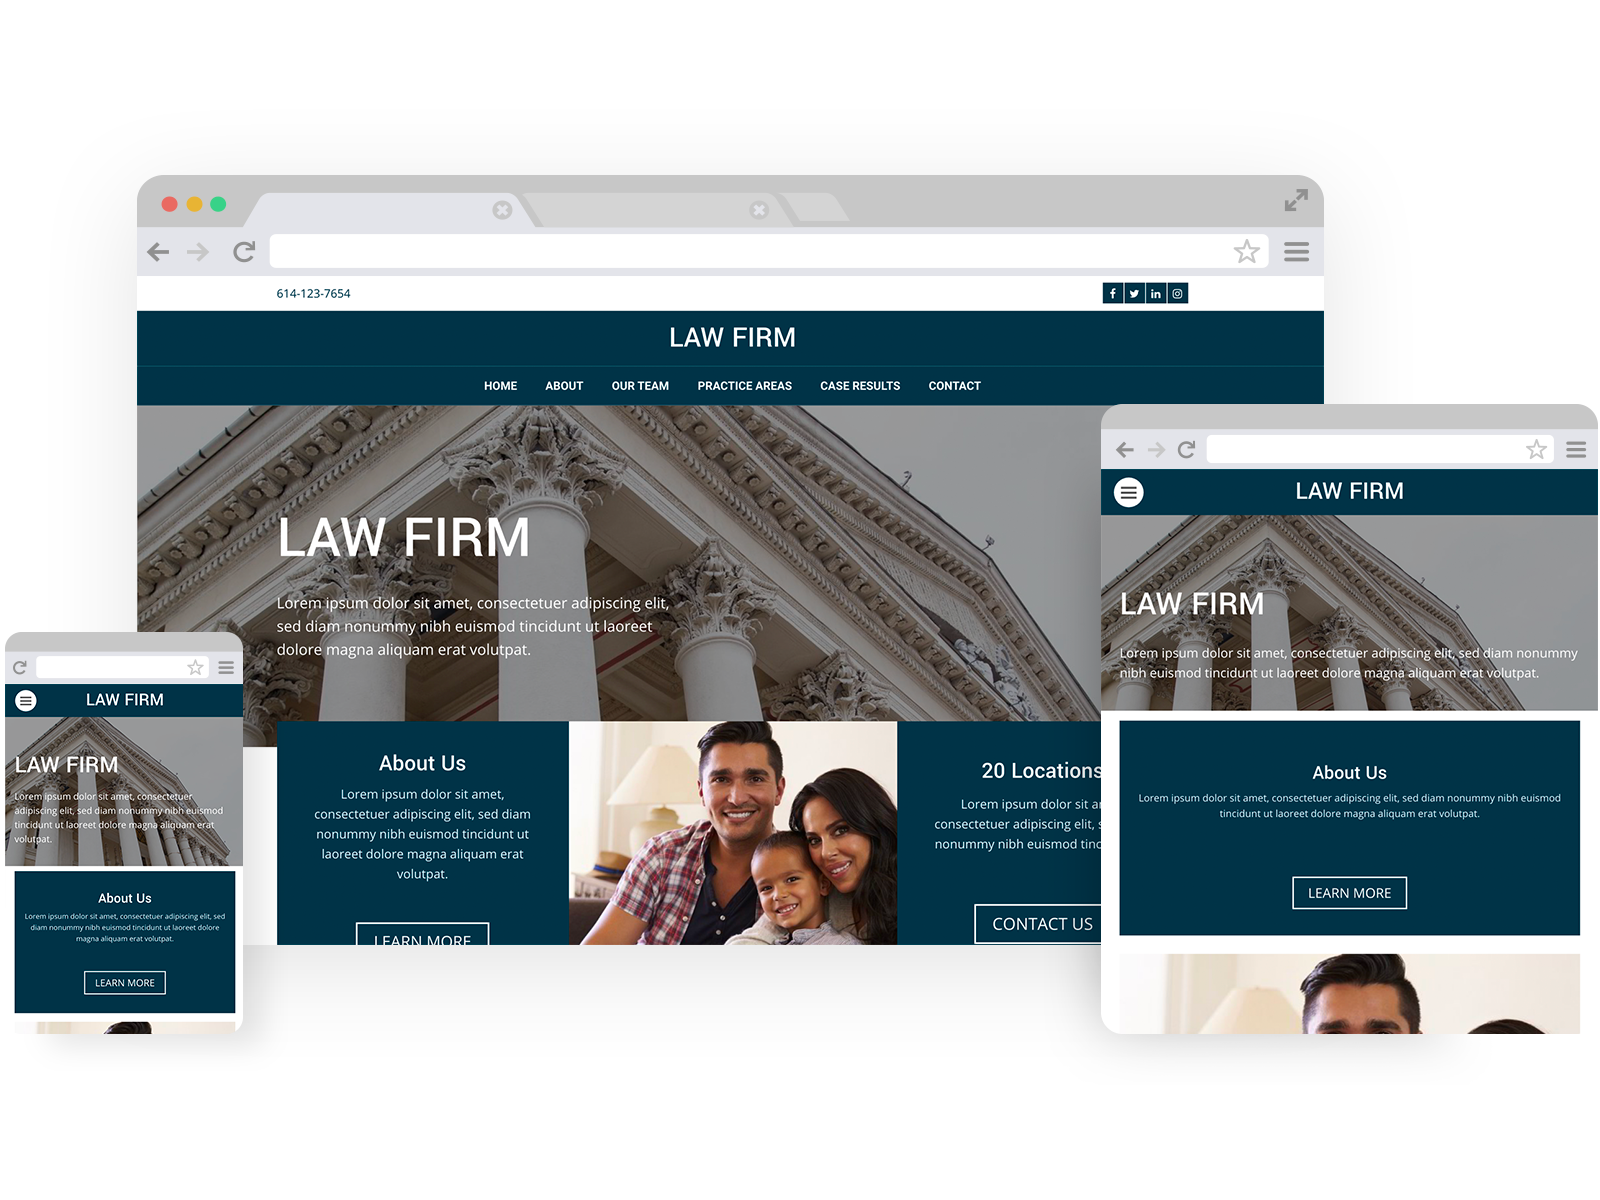 Law firm templates - template shown on Desktop, Tablet, and Mobile views.